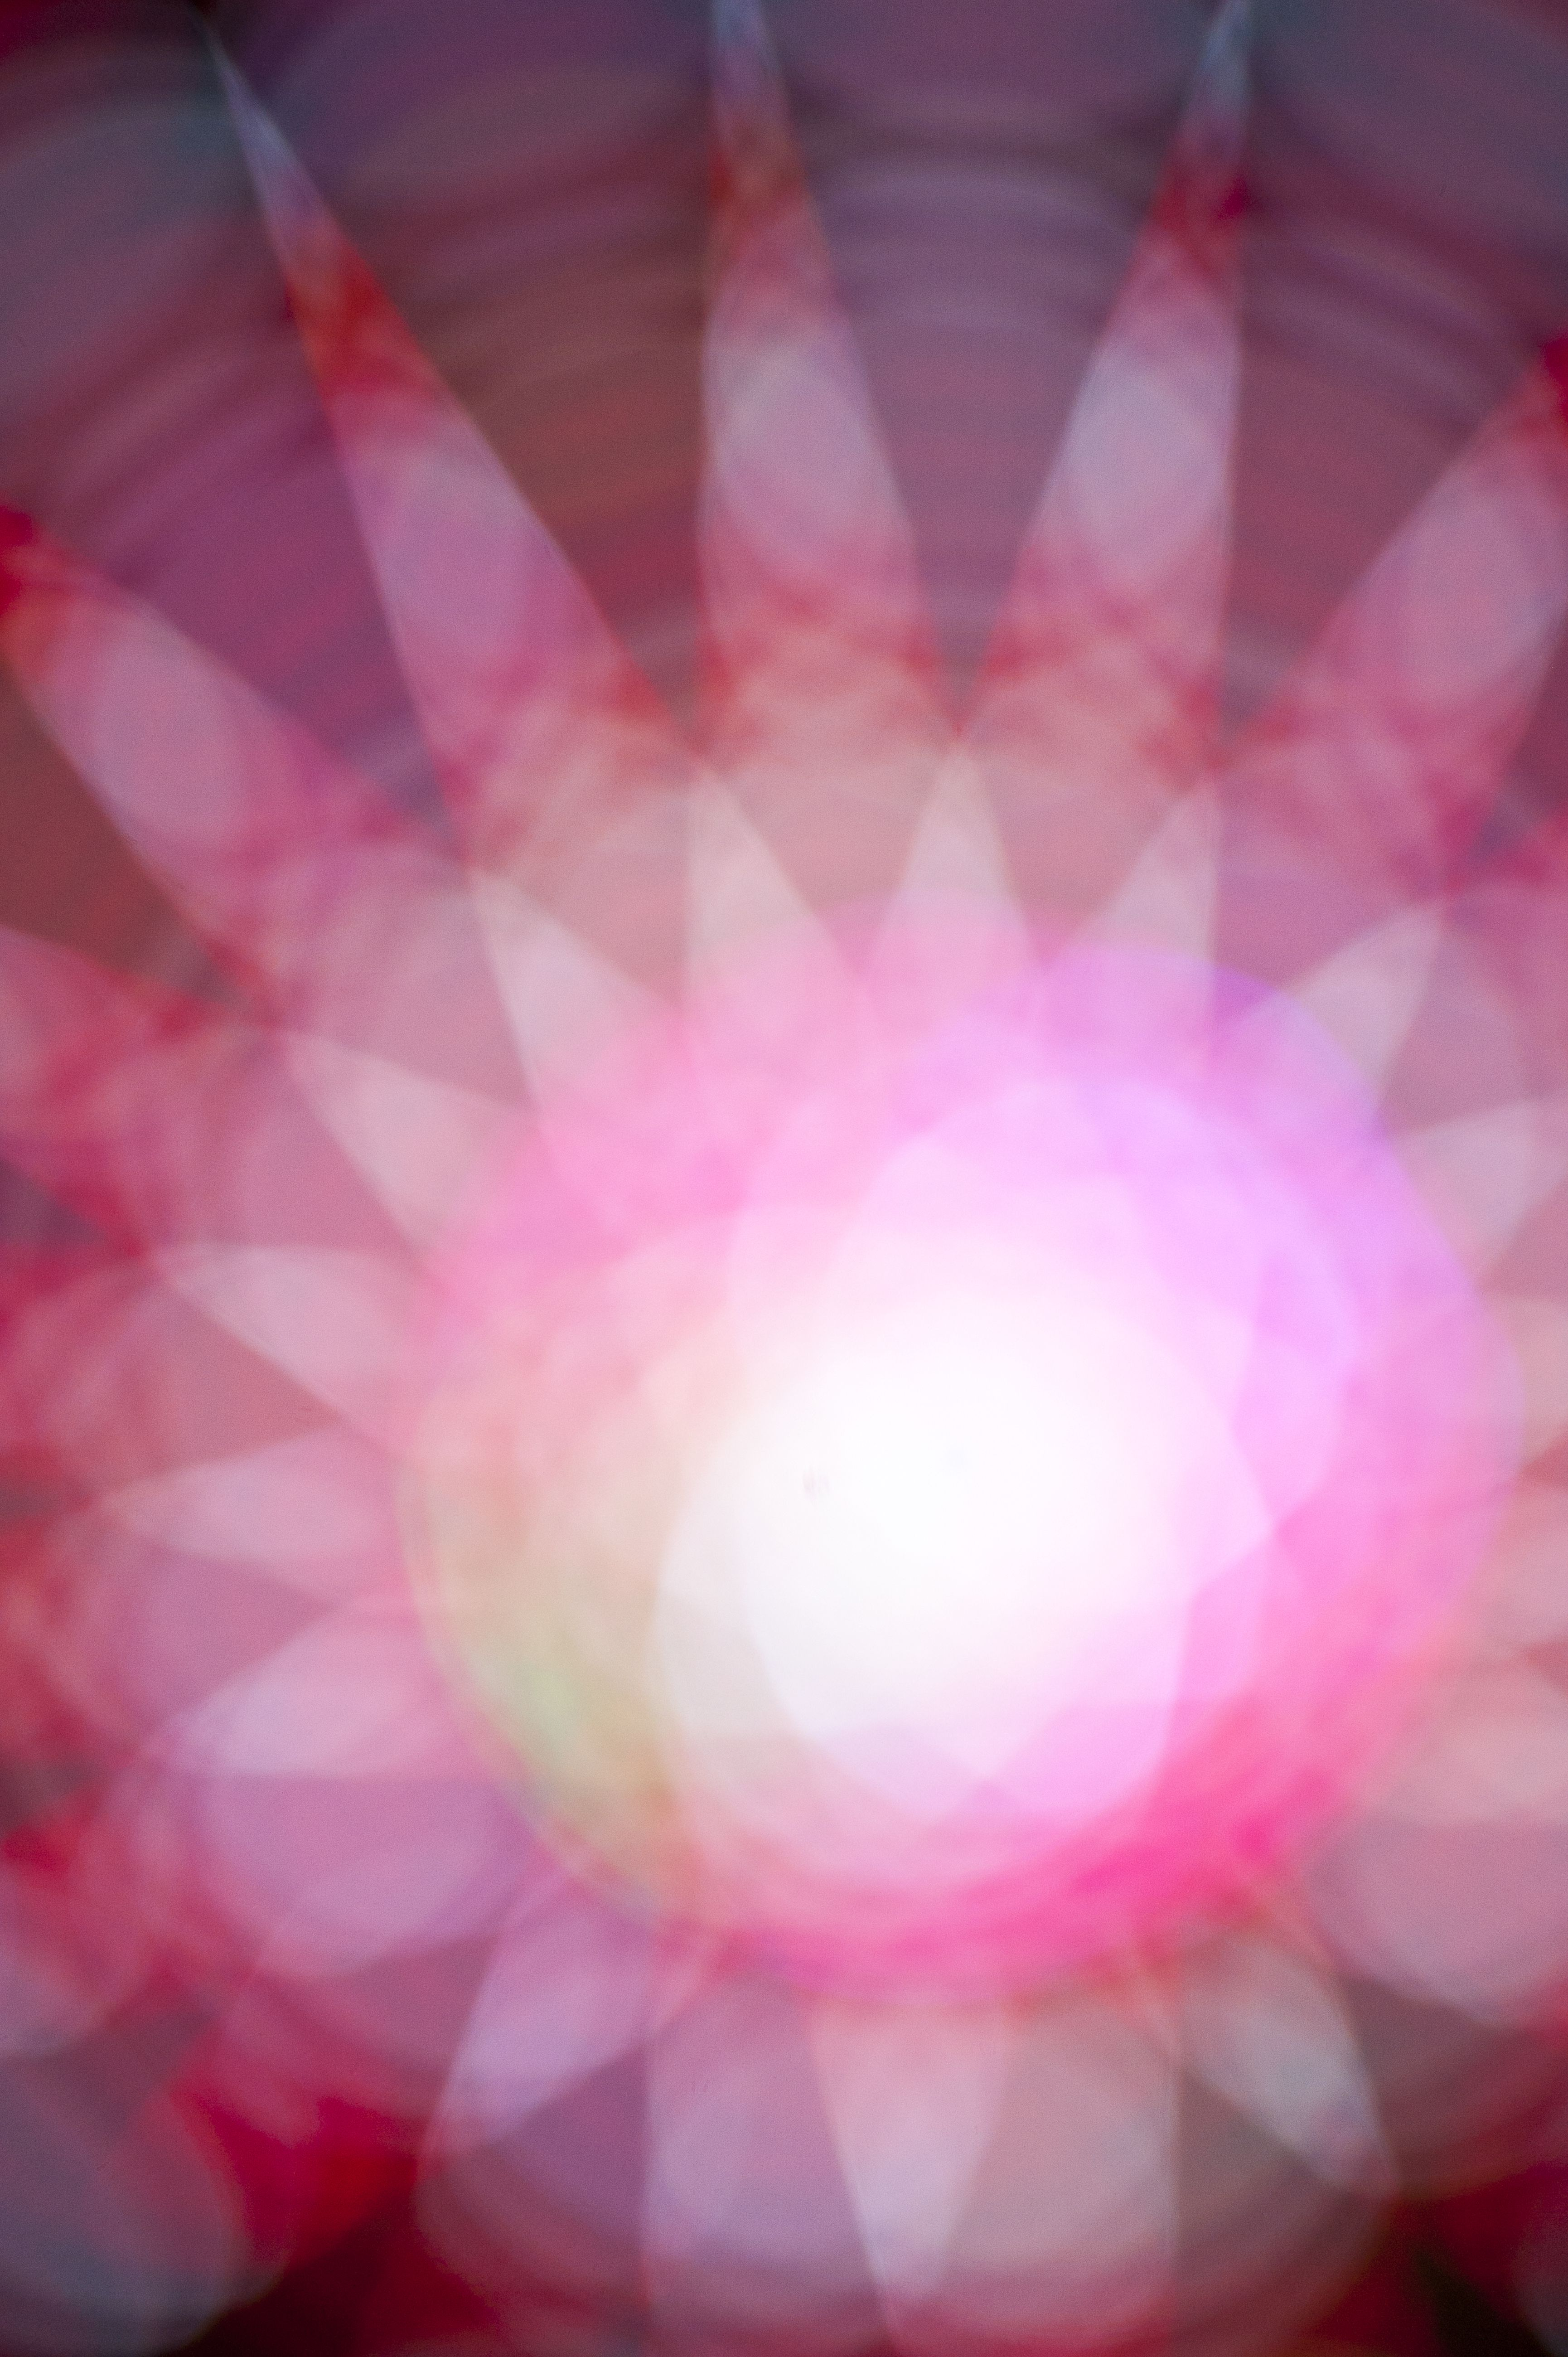 angel colors the pink light ray led by archangel chamuel